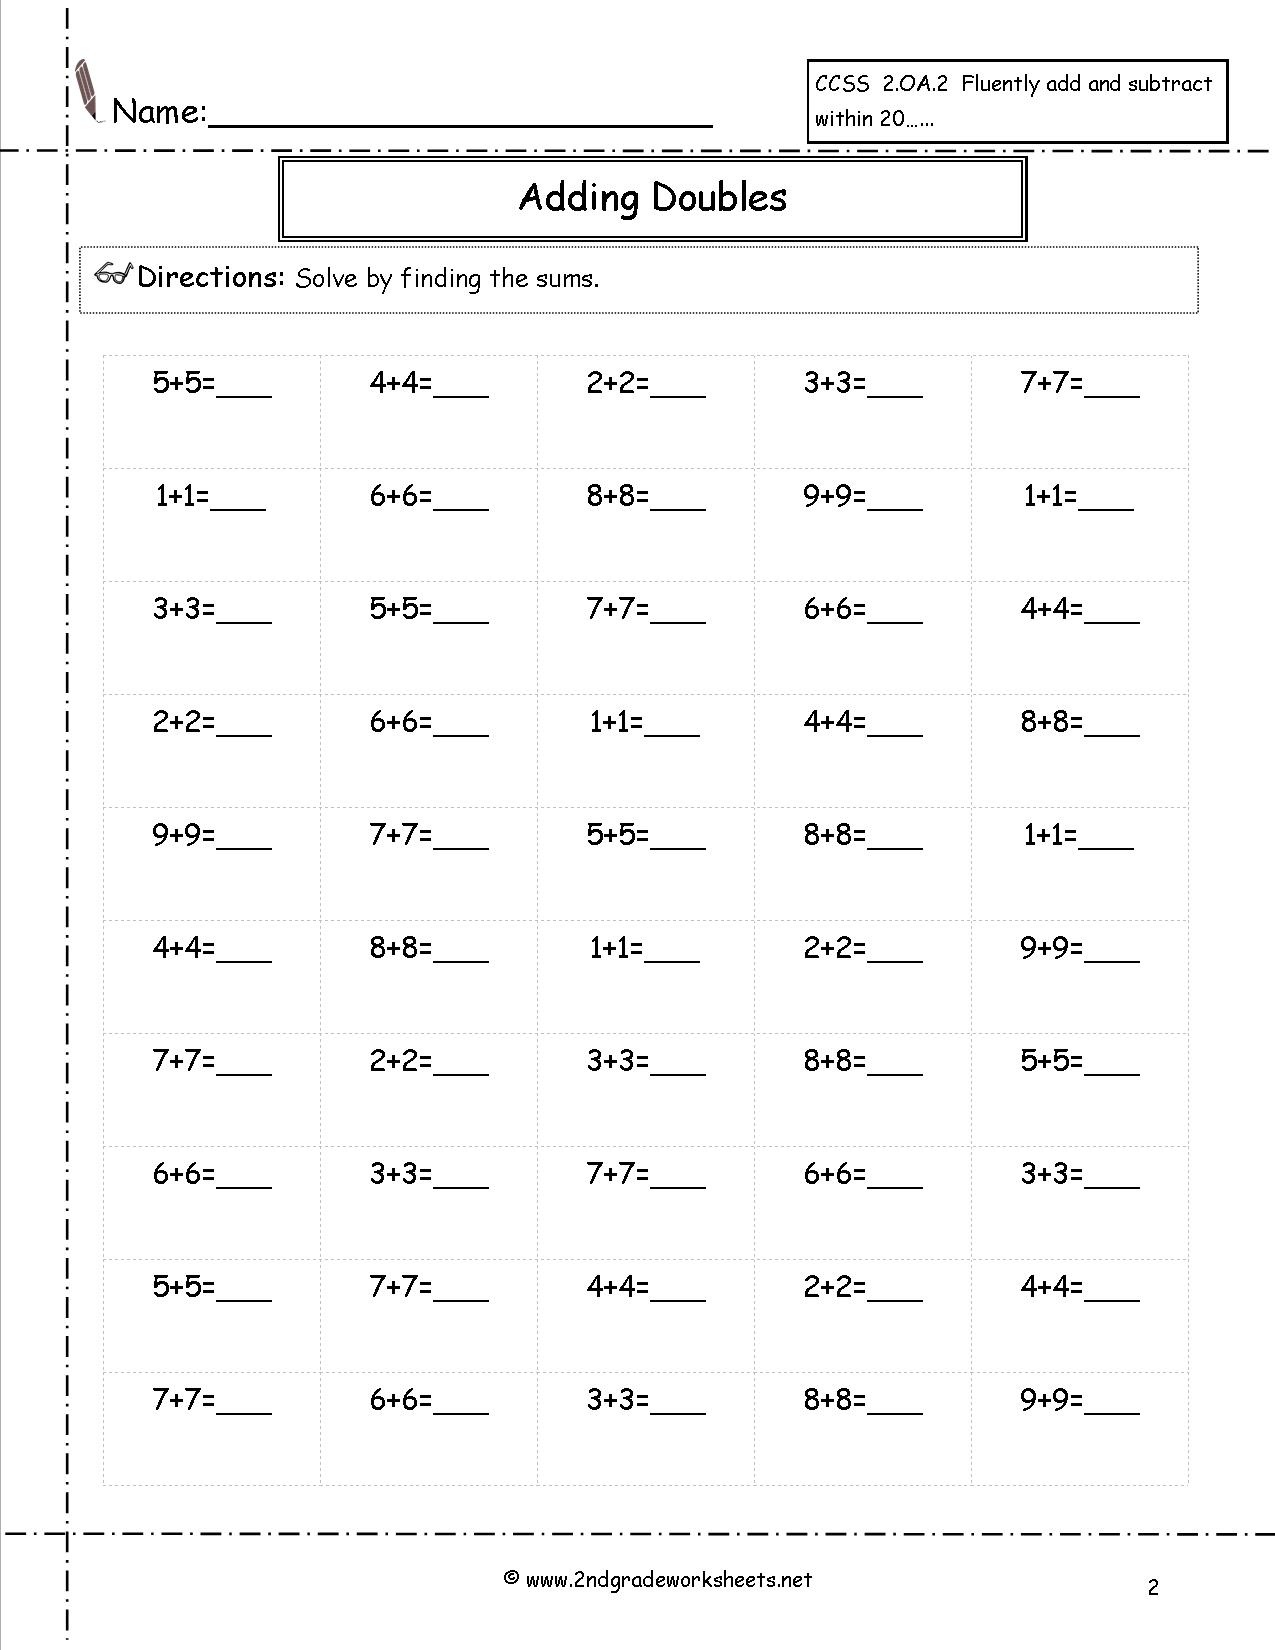 K5 Learning Free Printable Worksheets